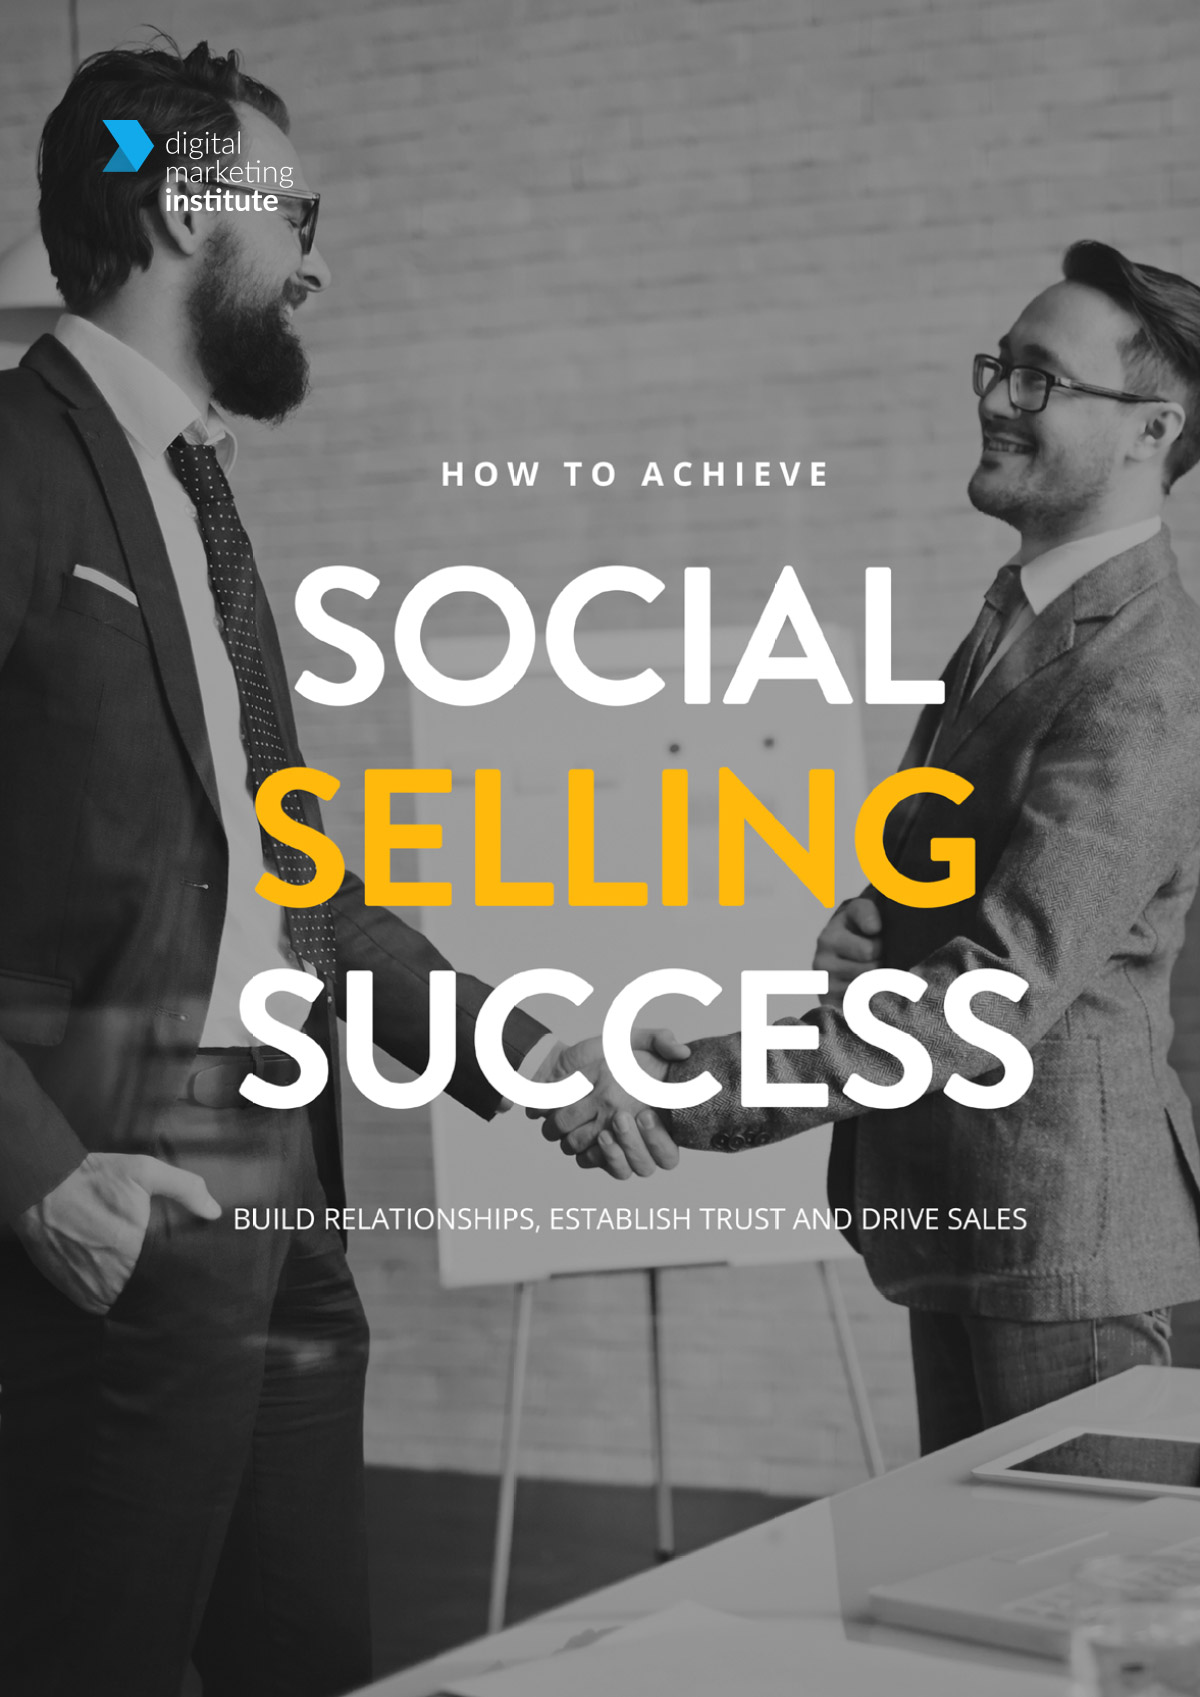 Free E-Book: How to Achieve Social Selling Success - Build Relationships, Establish Trust and Drive Sales